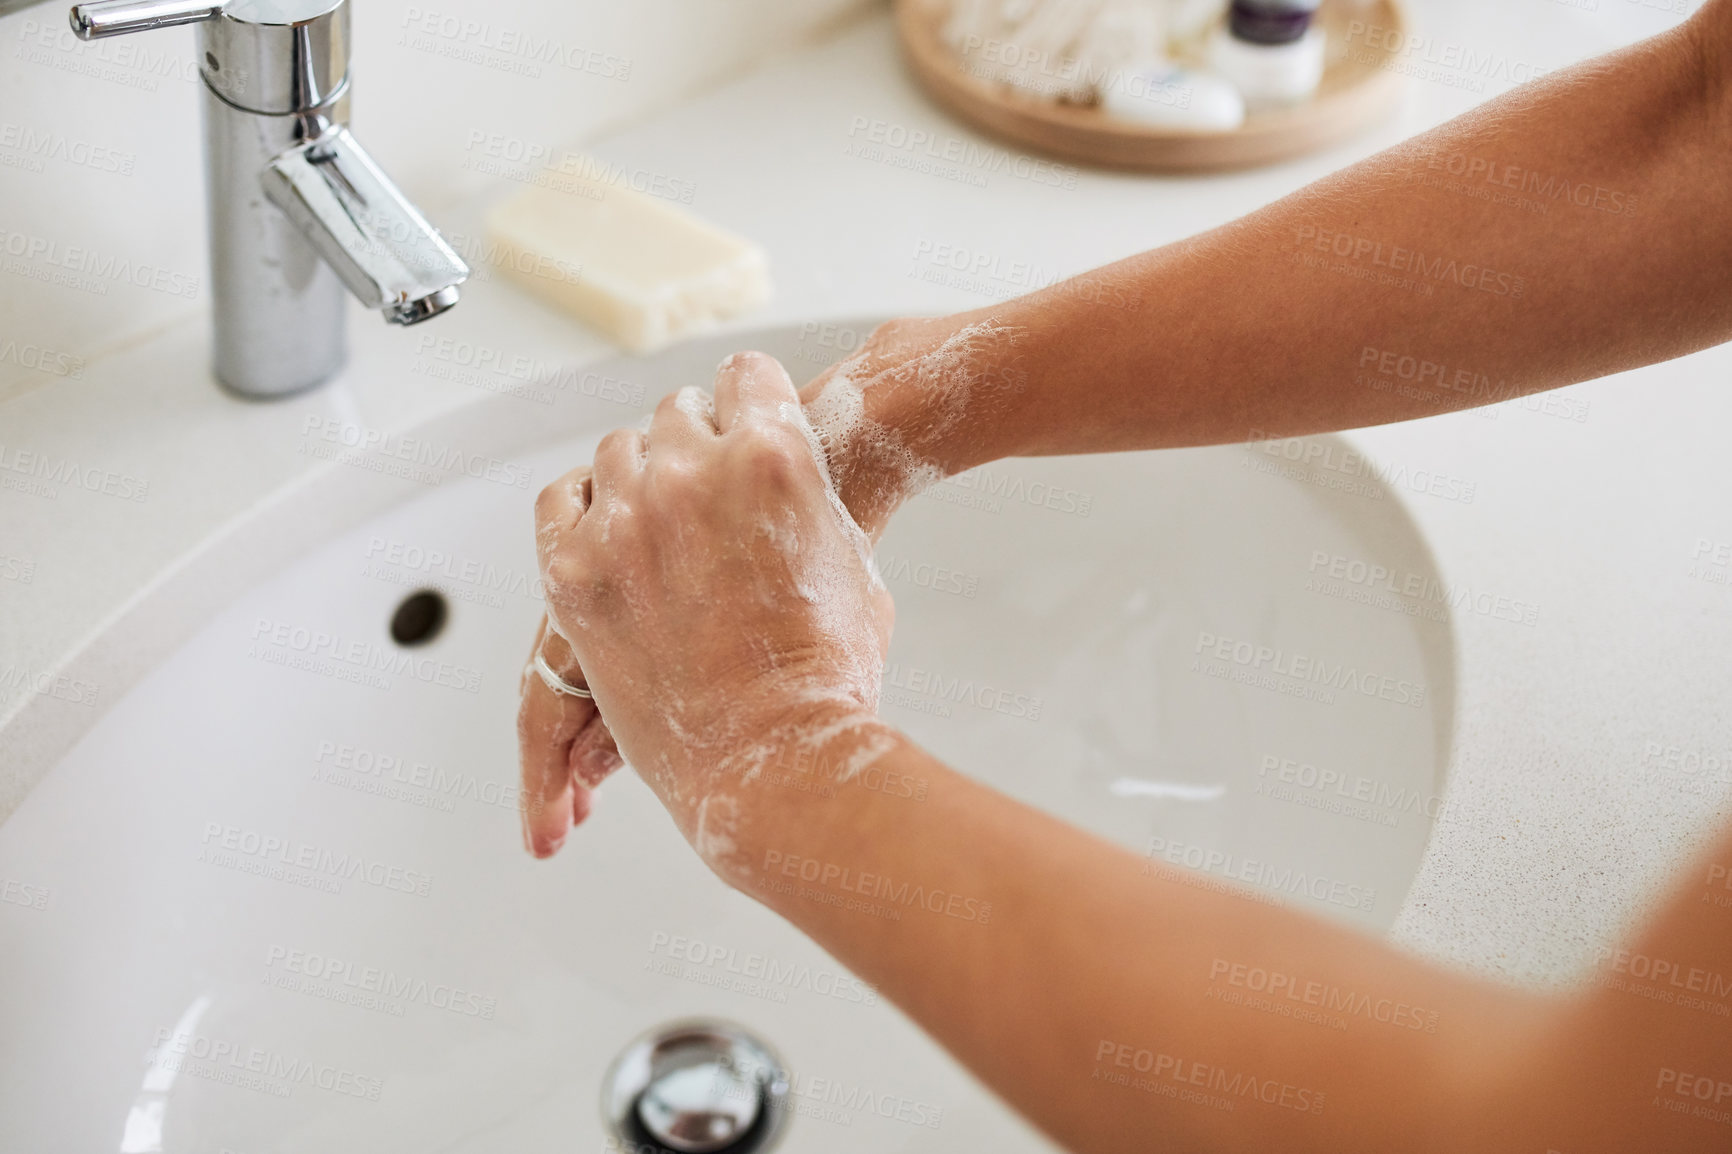 Buy stock photo Cropped shot of a woman washing her hands with soap in the bathroom sink at home